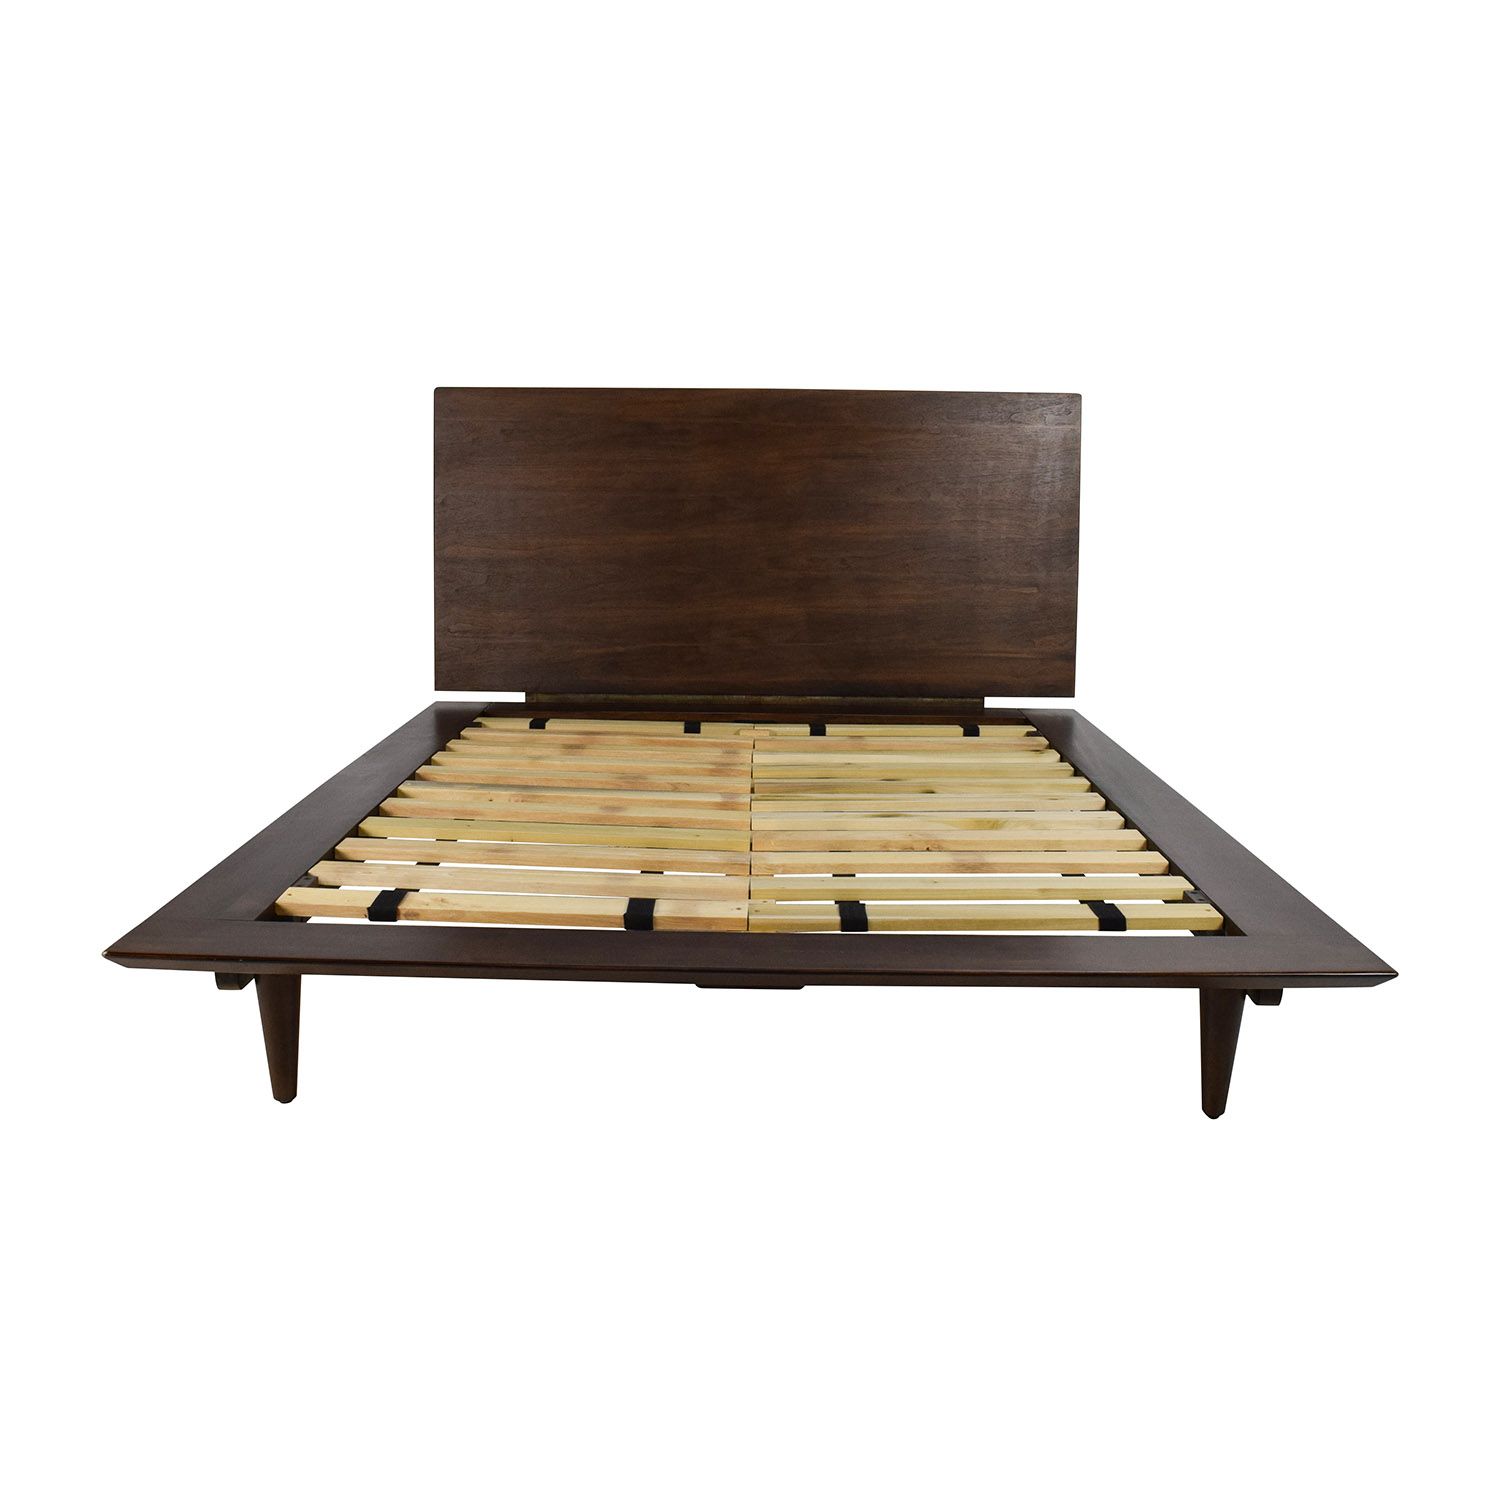 86 off full size brown wood bed frame beds